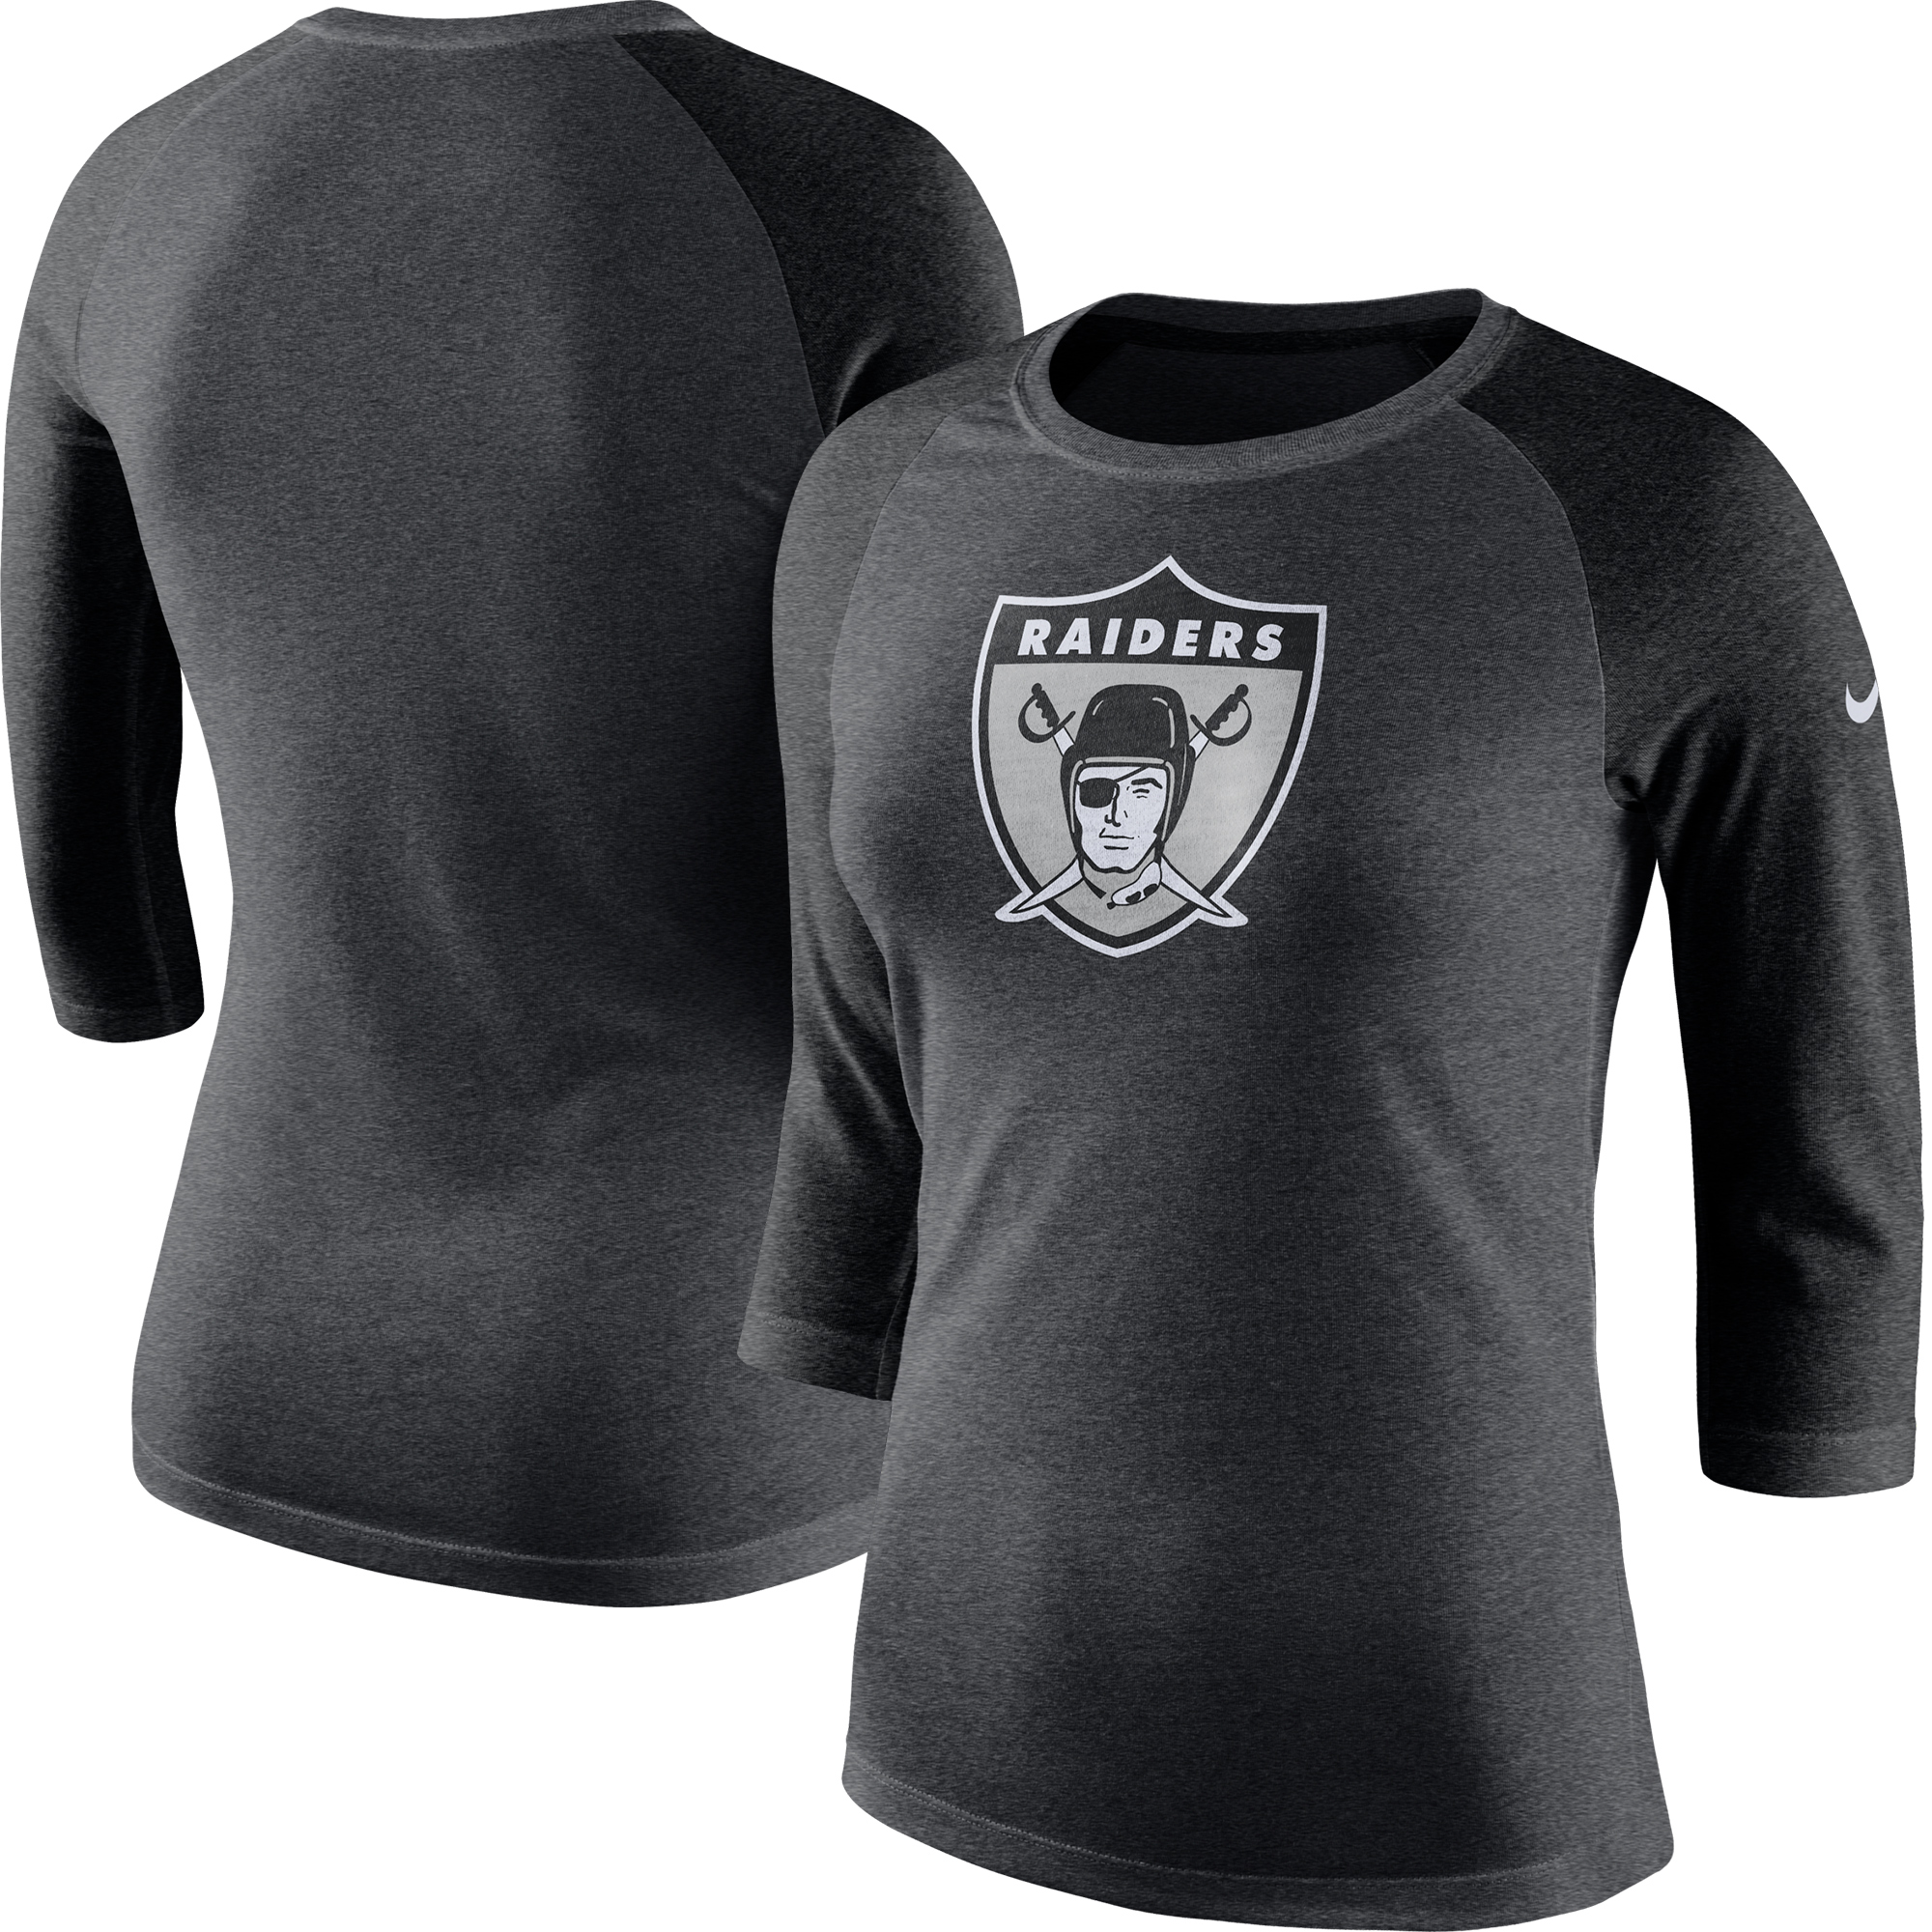 Oakland Raiders Nike Women's Marled Throwback Logo Tri-Blend 3/4-Sleeve Raglan T-Shirt - Charcoal/Black